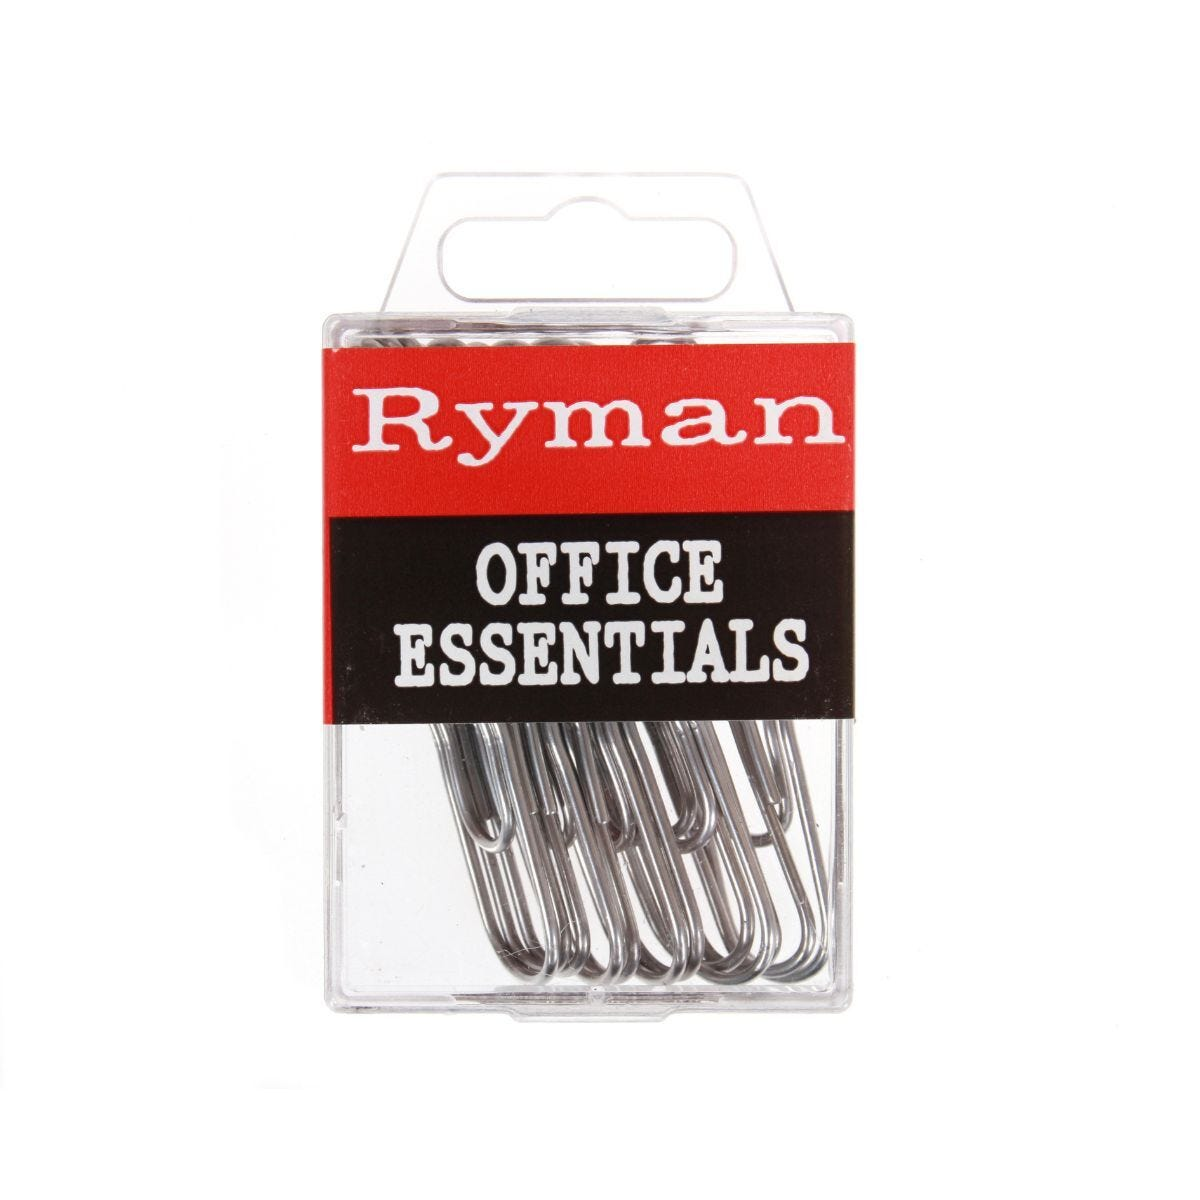 Giant Paperclips Pack of 12